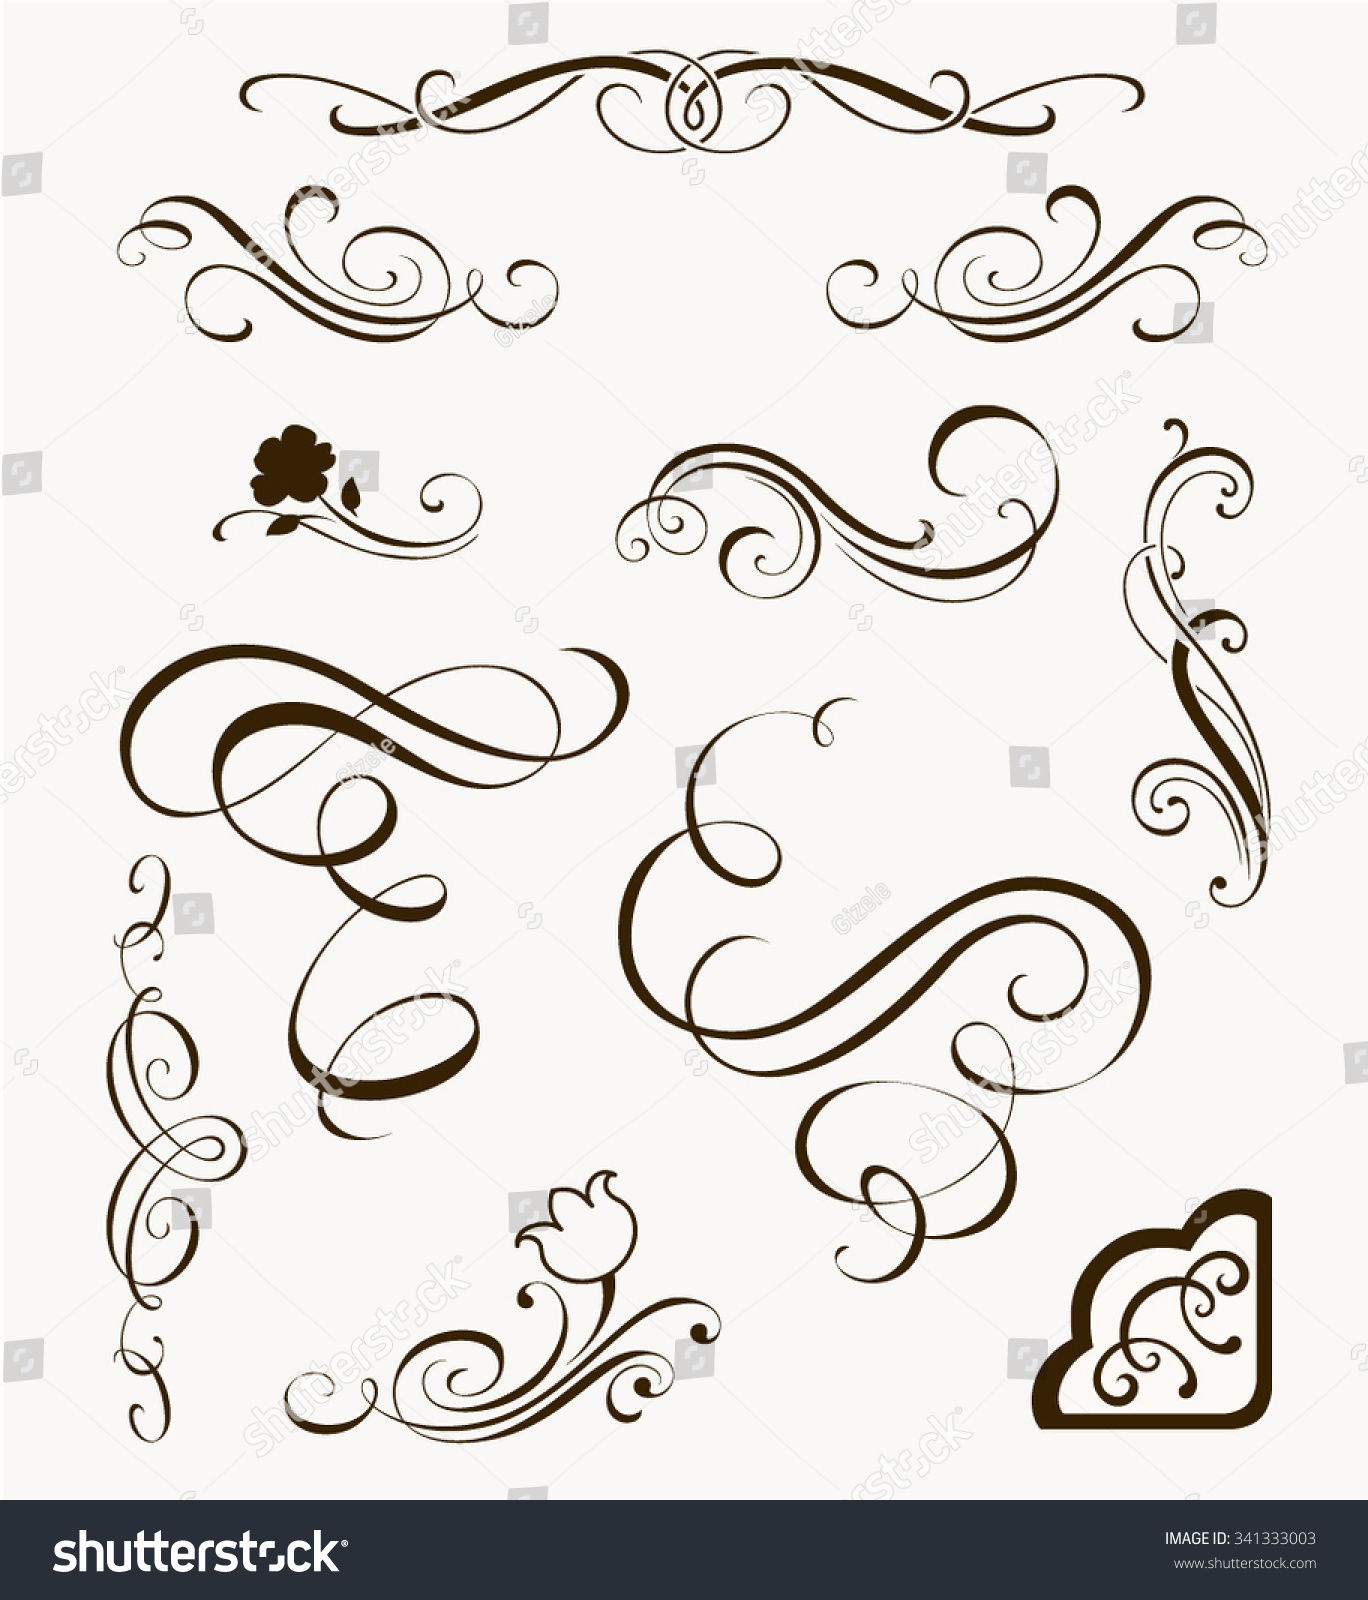 Set decorative flourish elements calligraphic ornaments